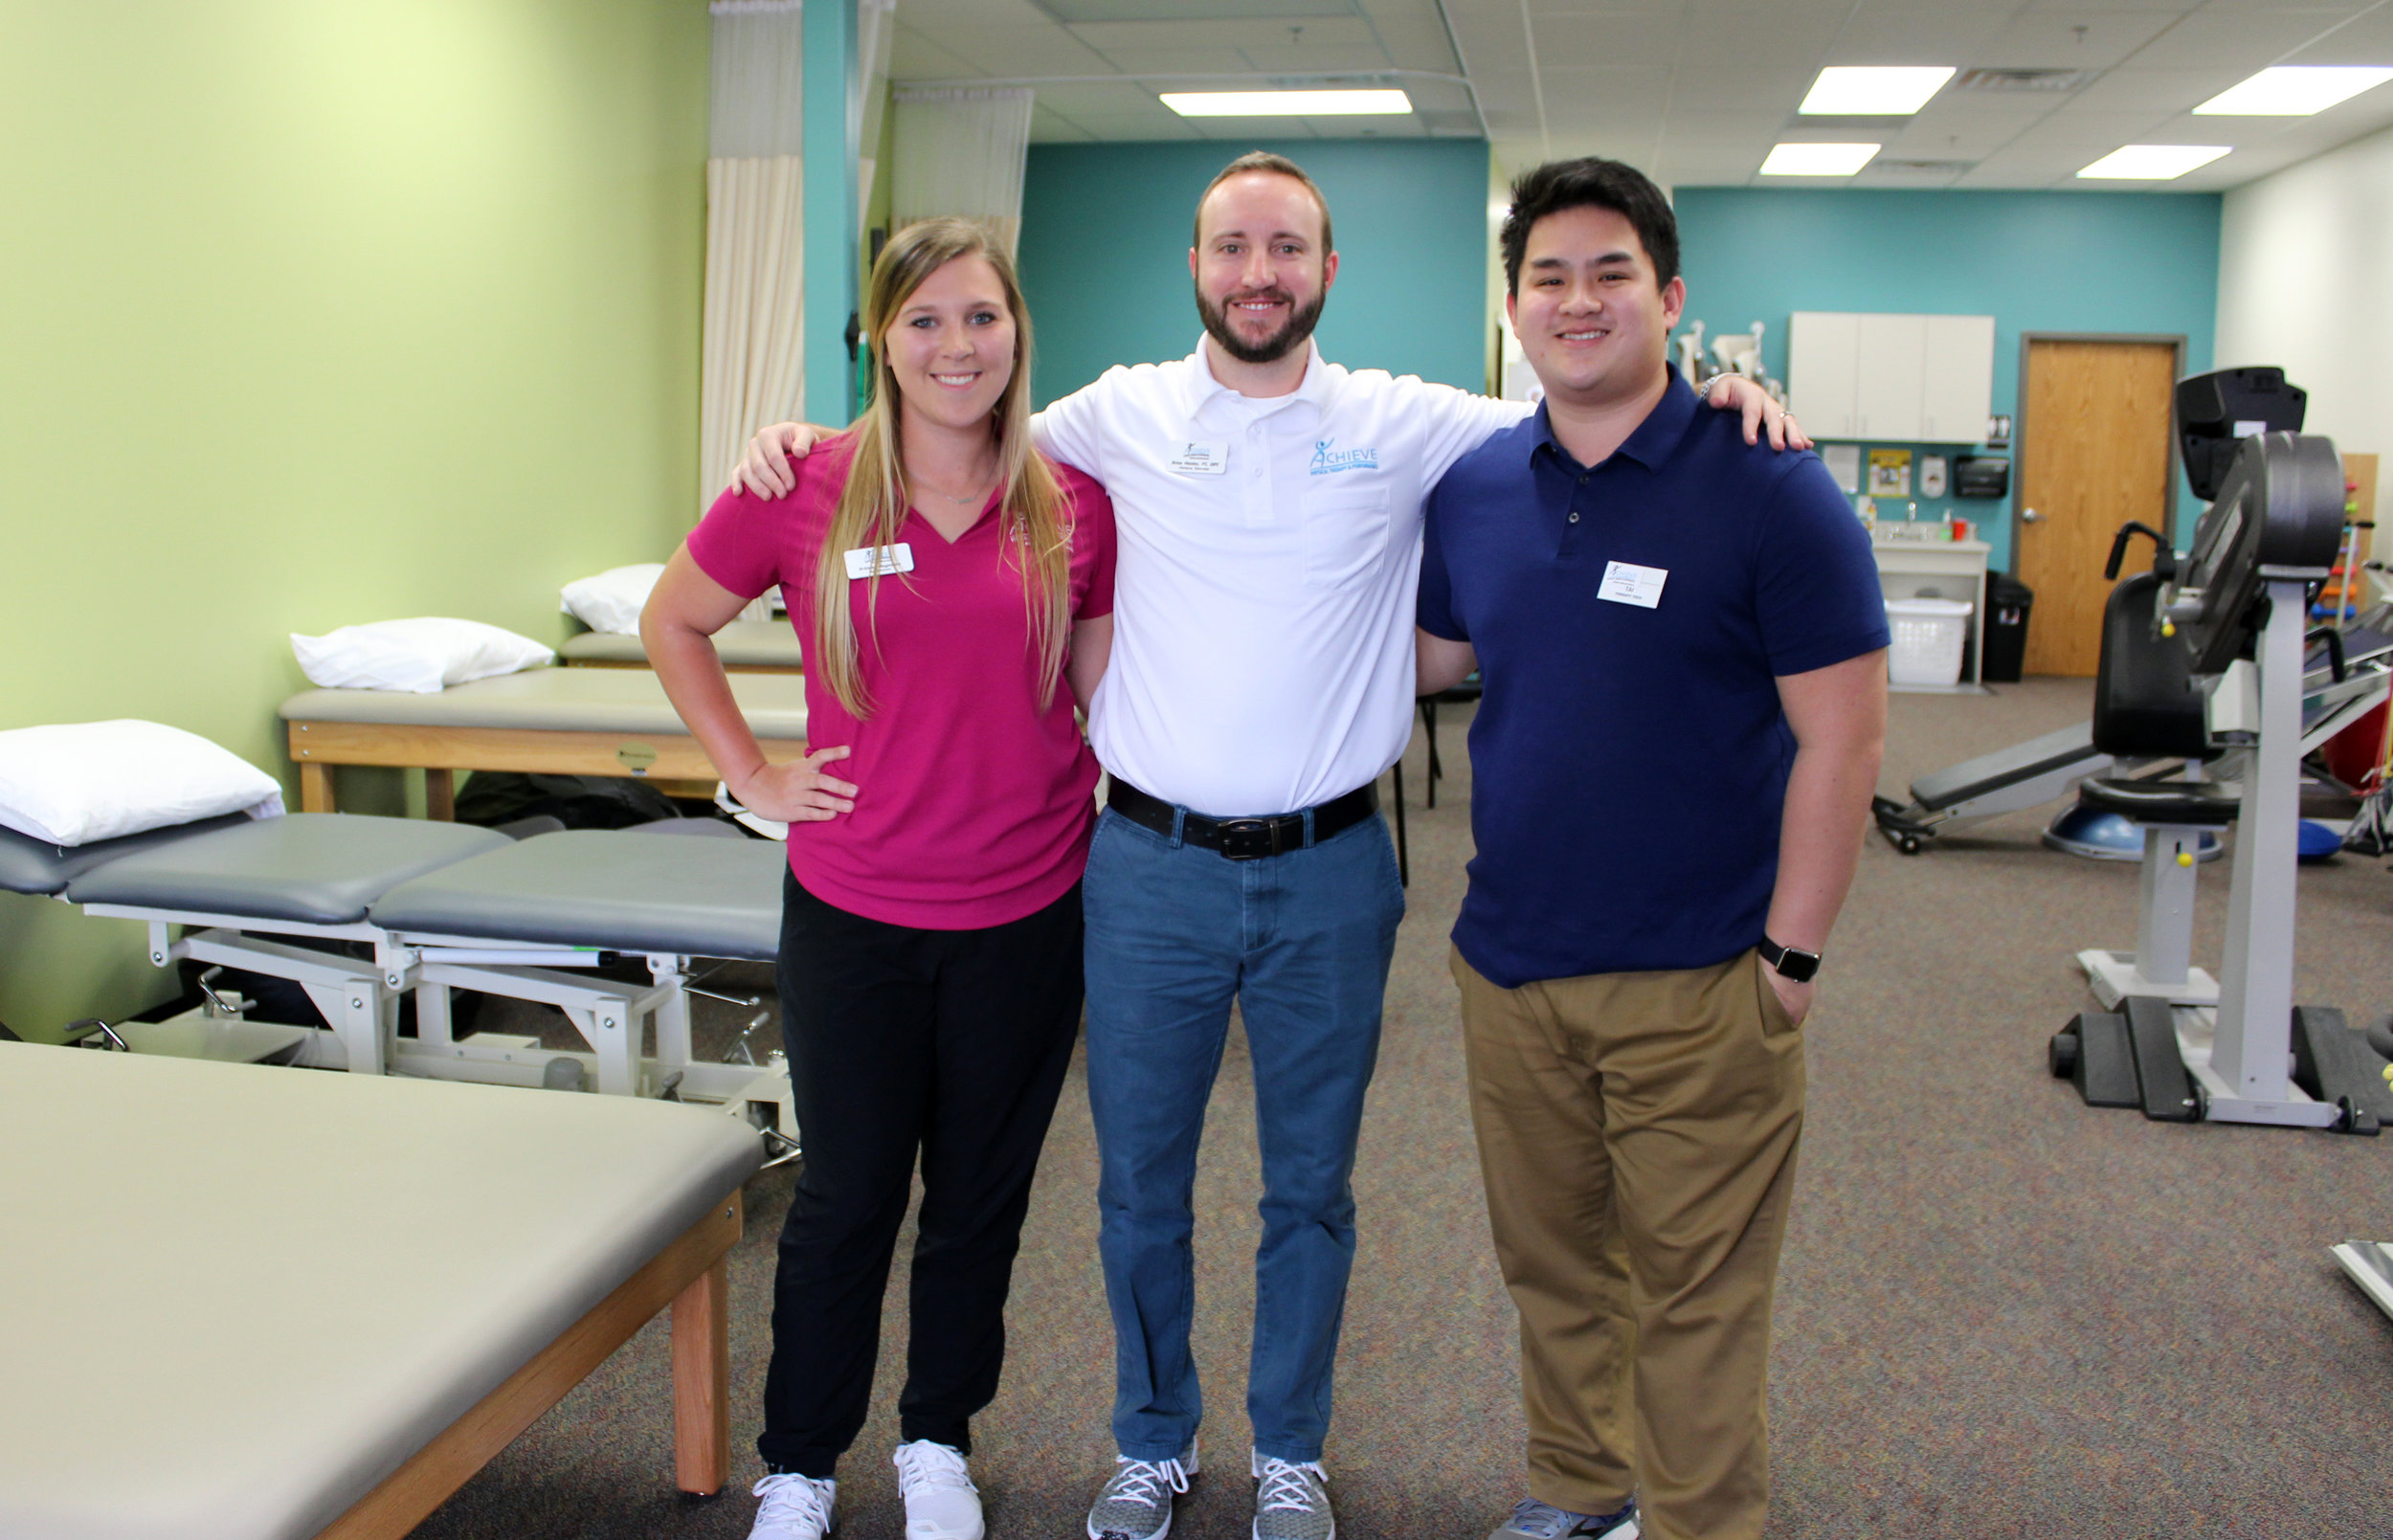 The Achieve staff (from left), Brittney Magnuson, receptionist, Brian Hunter, Clinic Director/Physical Therapist and Tai Nguyen, tech.